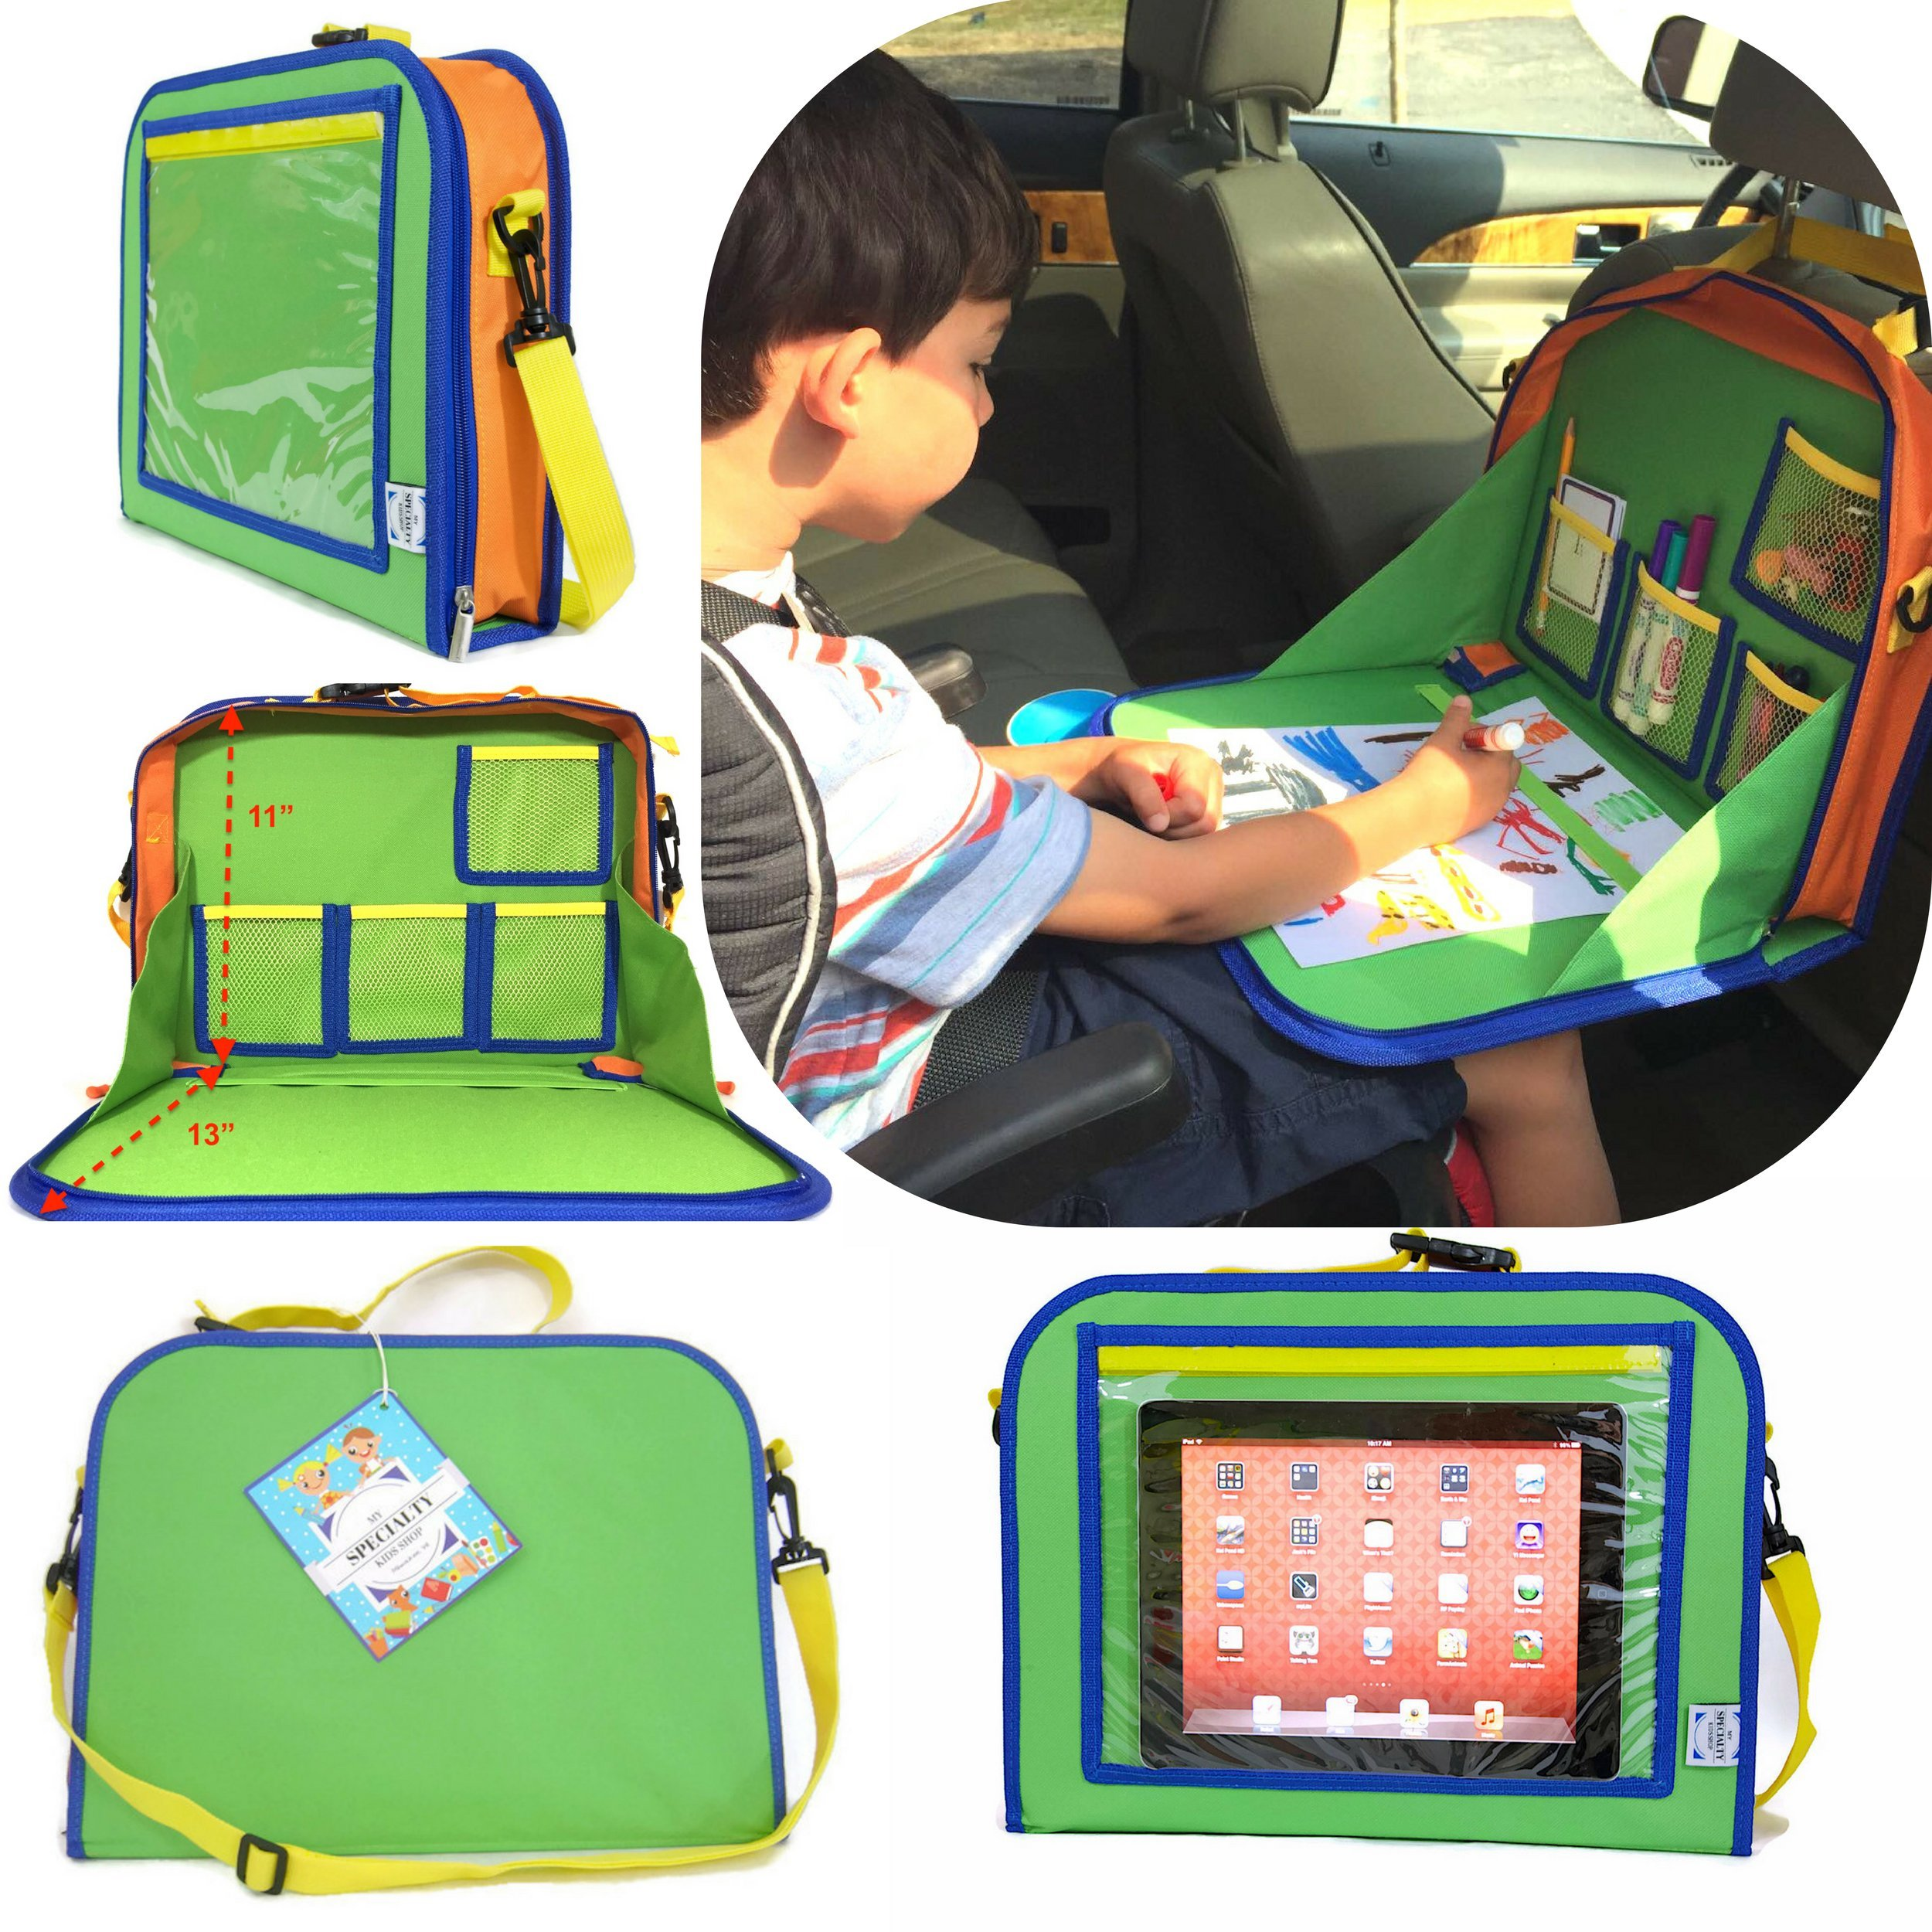 Kids Backseat Travel Tray Organizer Holds Crayons Markers an iPad Kindle or Other Tablet. Great for Road Trips and Travel used as a Lap Tray Writing Surface or as Access to Electronics for Kids Age 3+ by My Specialty Kids Shop